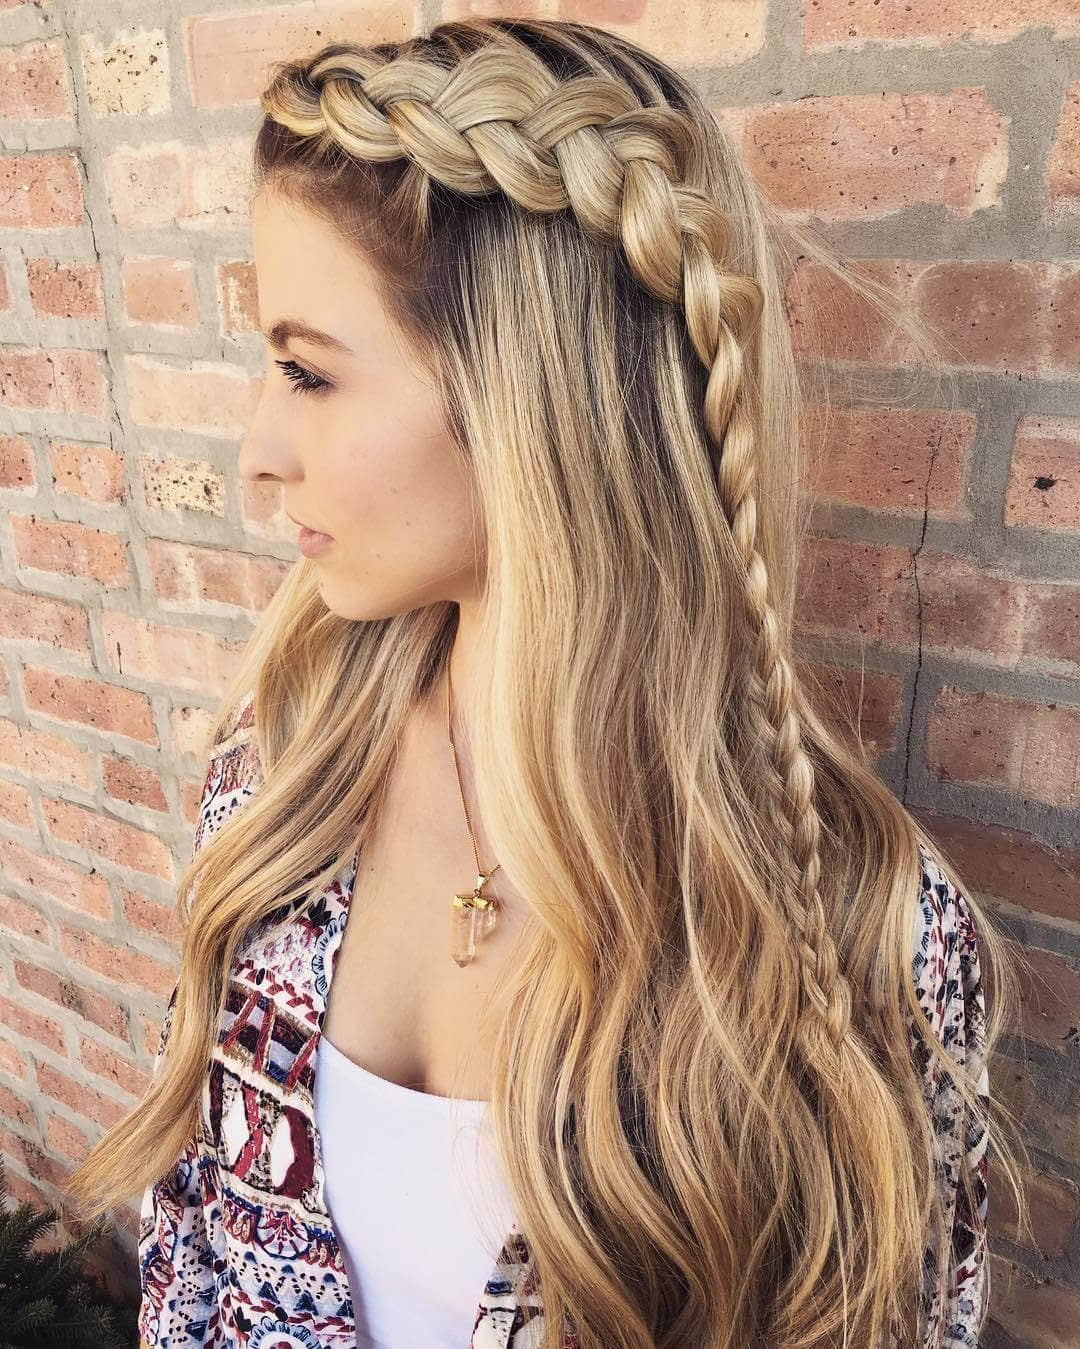 25 Effortless Side Braid Hairstyles To Make You Feel Special Throughout Current Headband Braided Hairstyles With Long Waves (View 1 of 20)